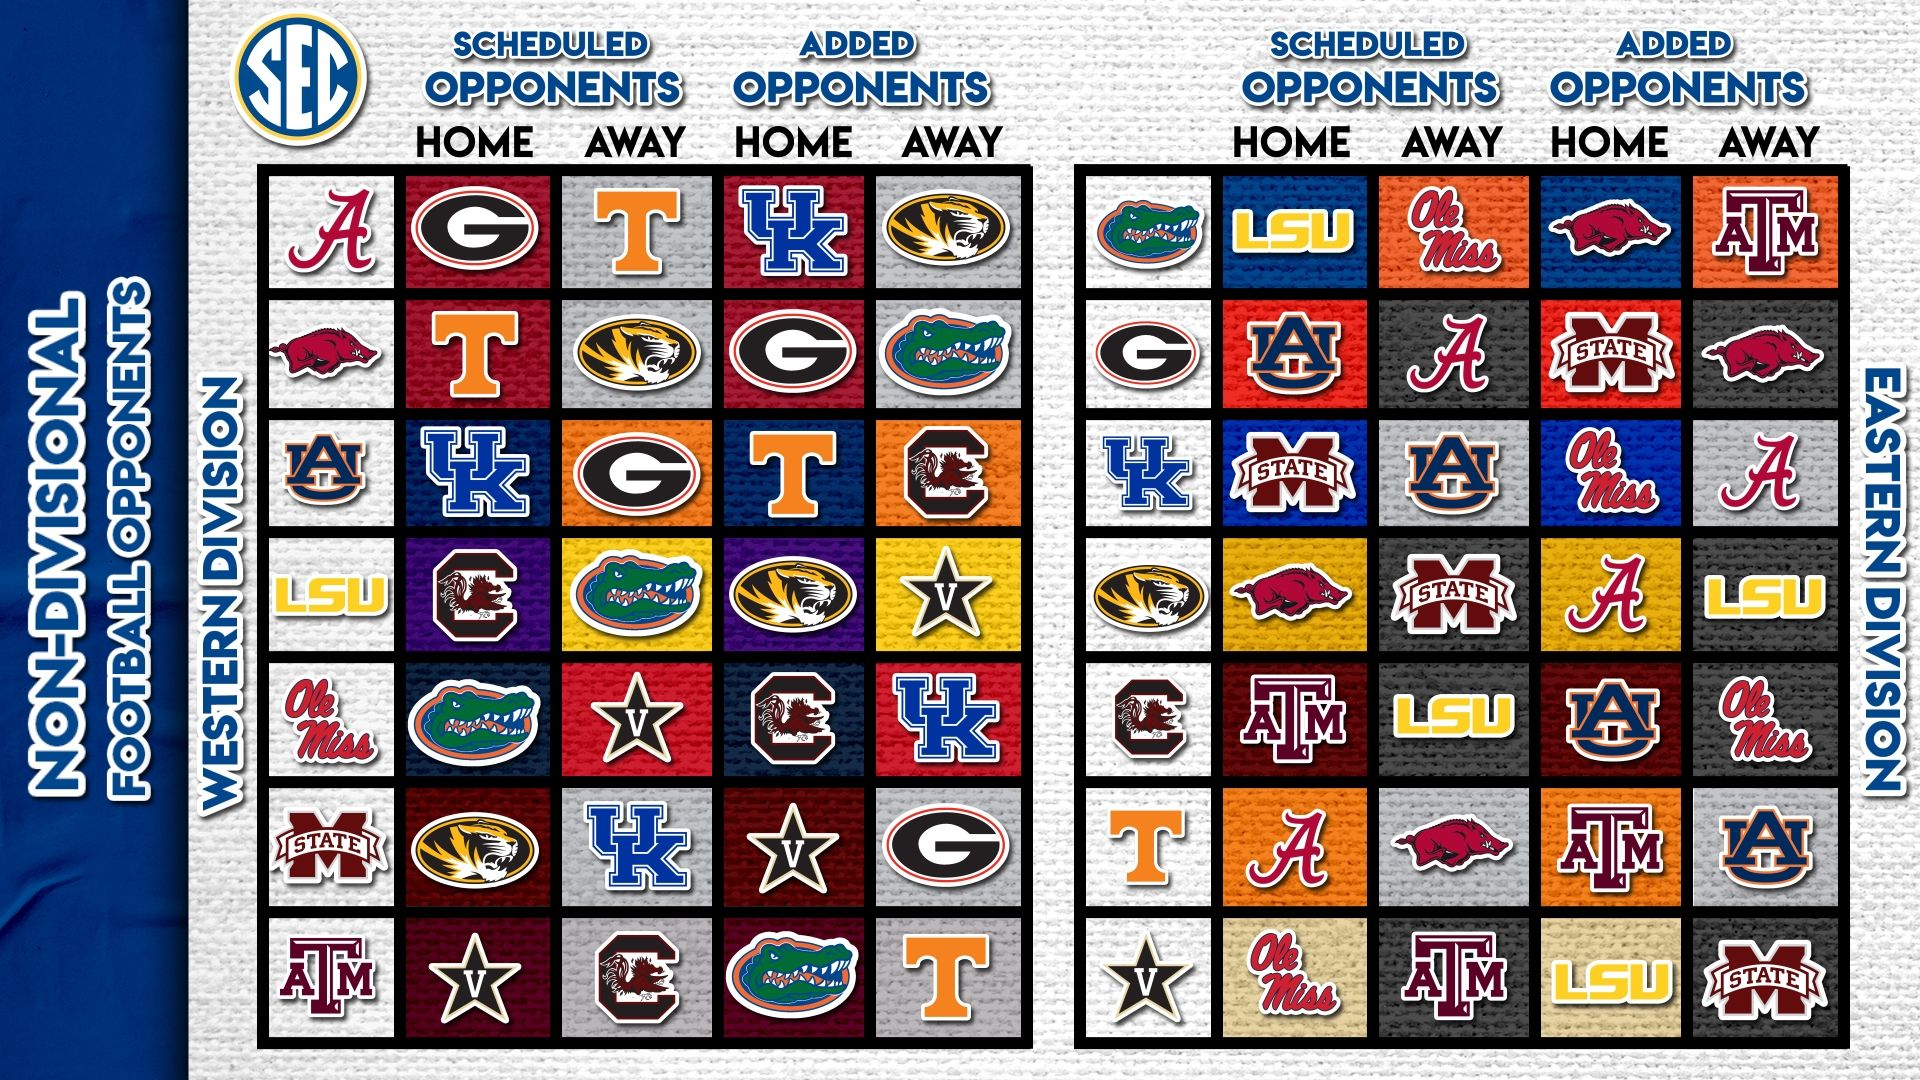 New Sec Opponents Set For Revised Football Schedule